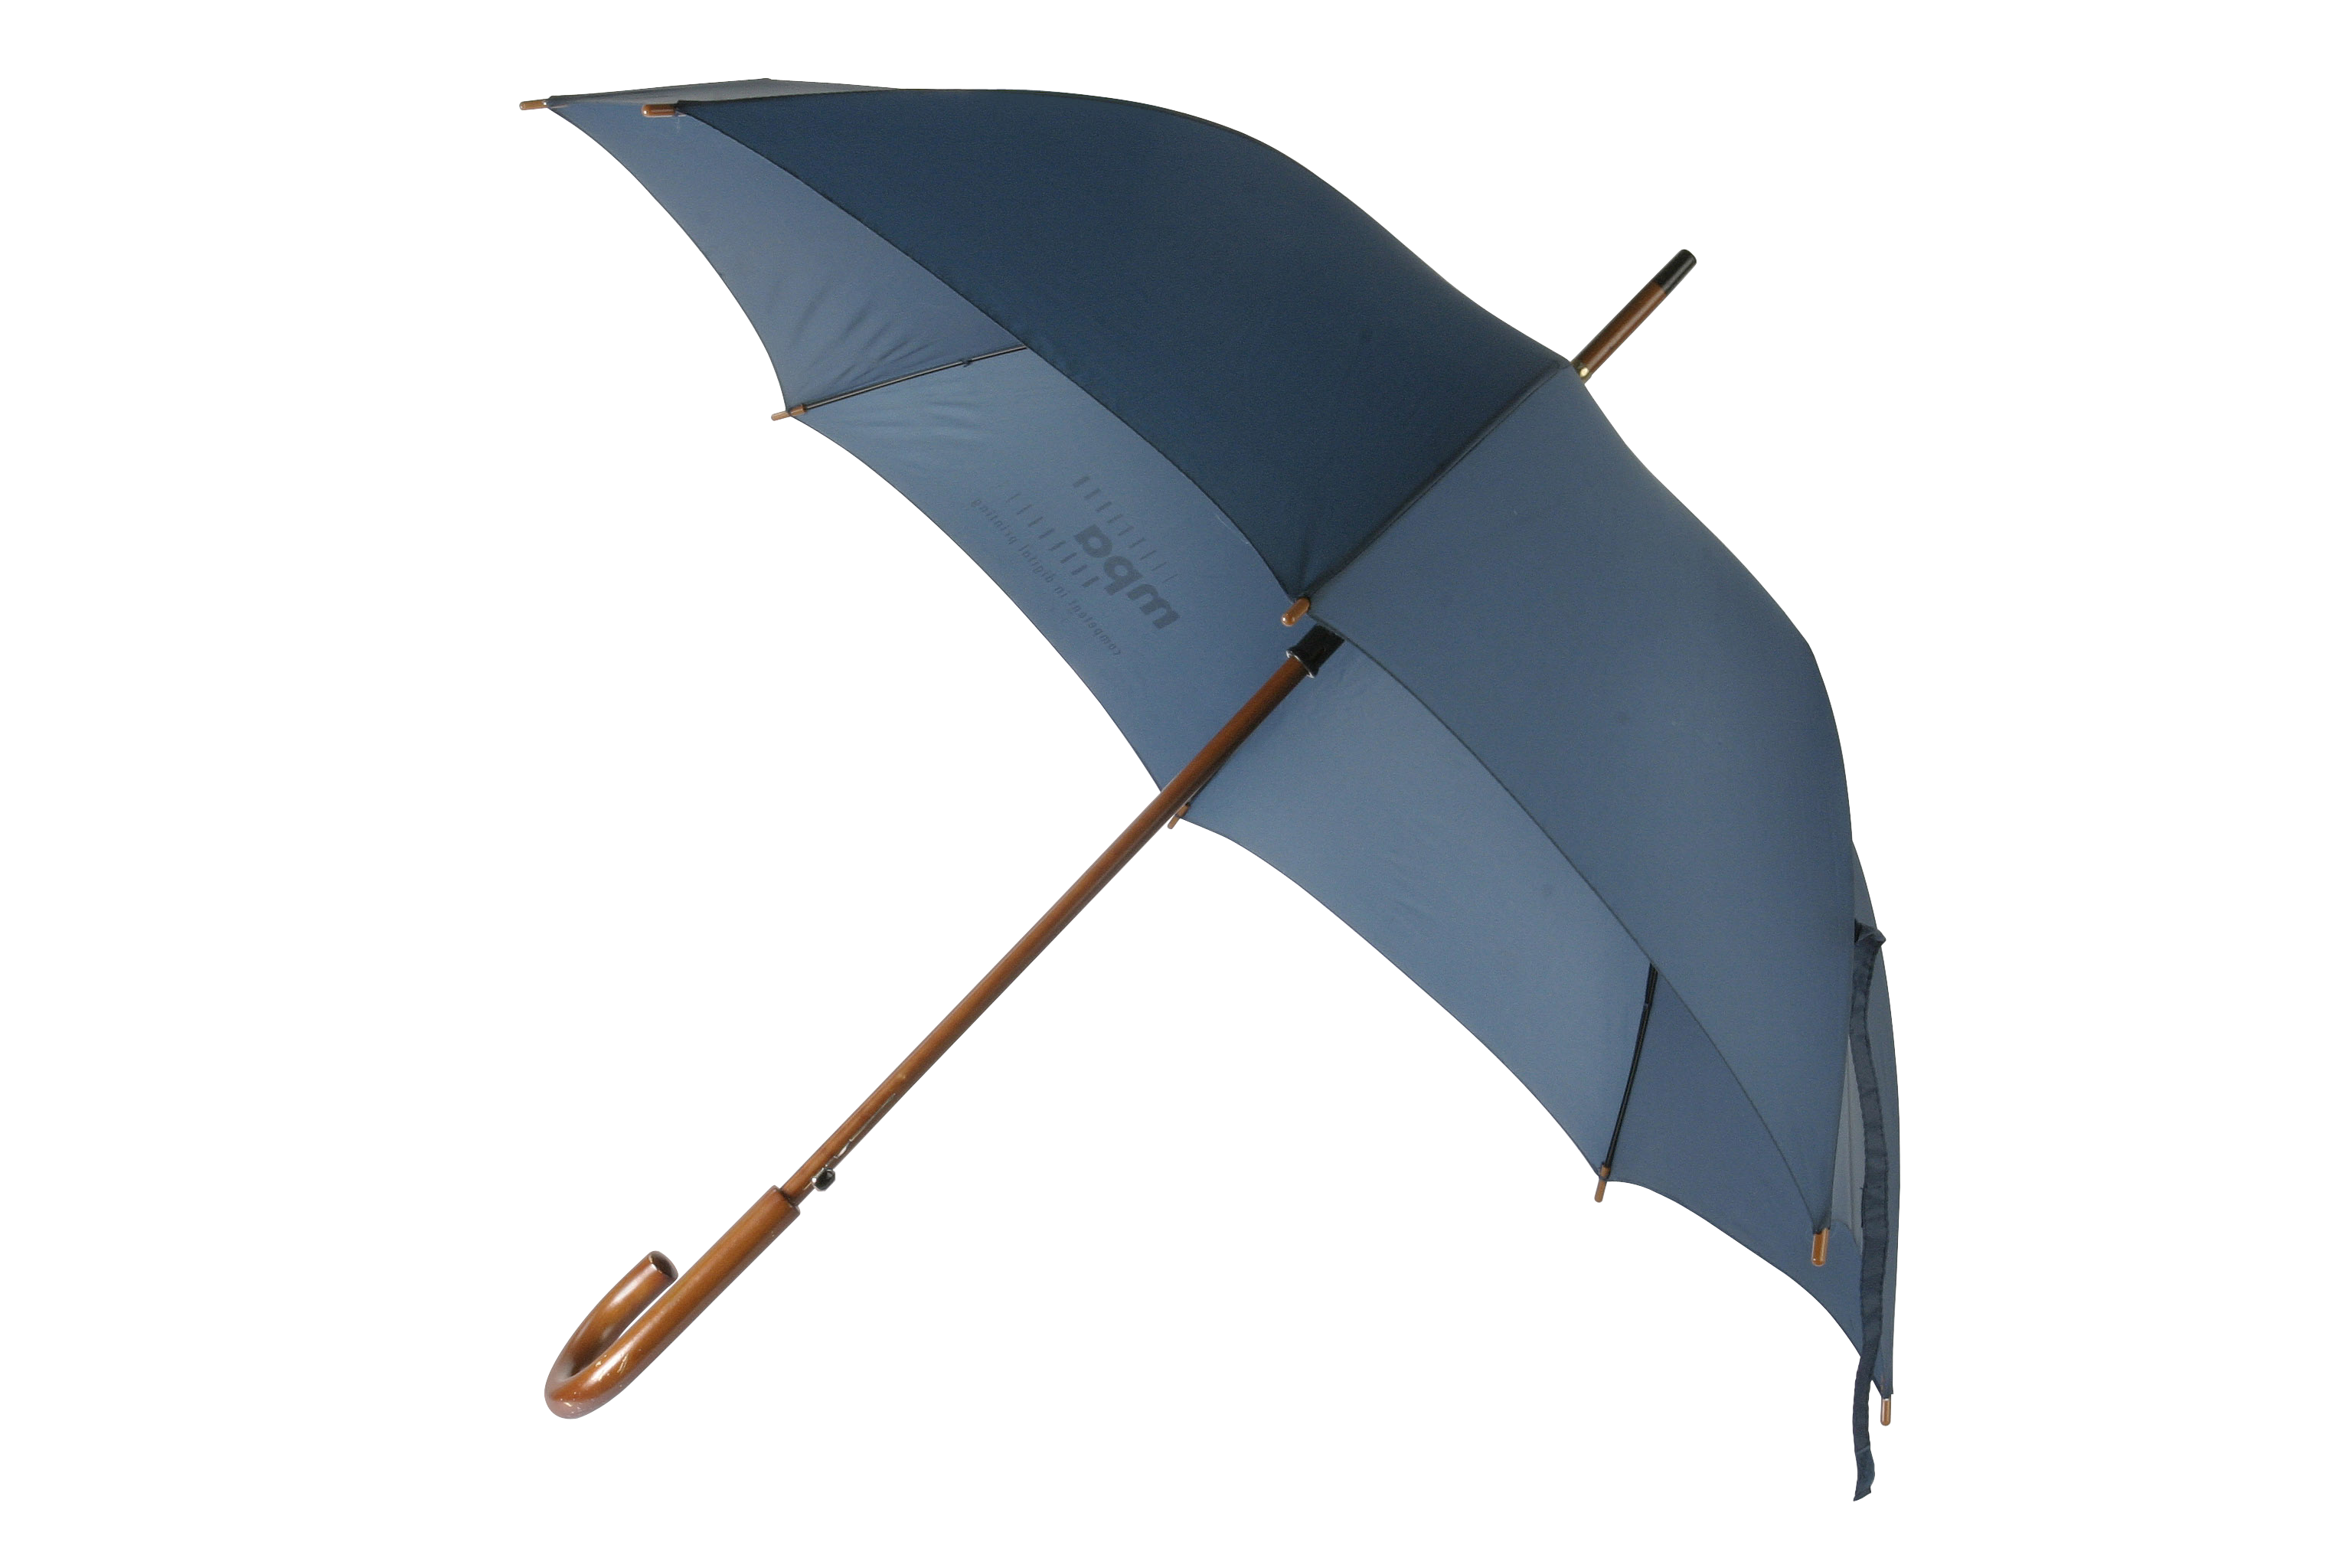 Download Free High-quality Umbrella Png Transparent Images image #19727